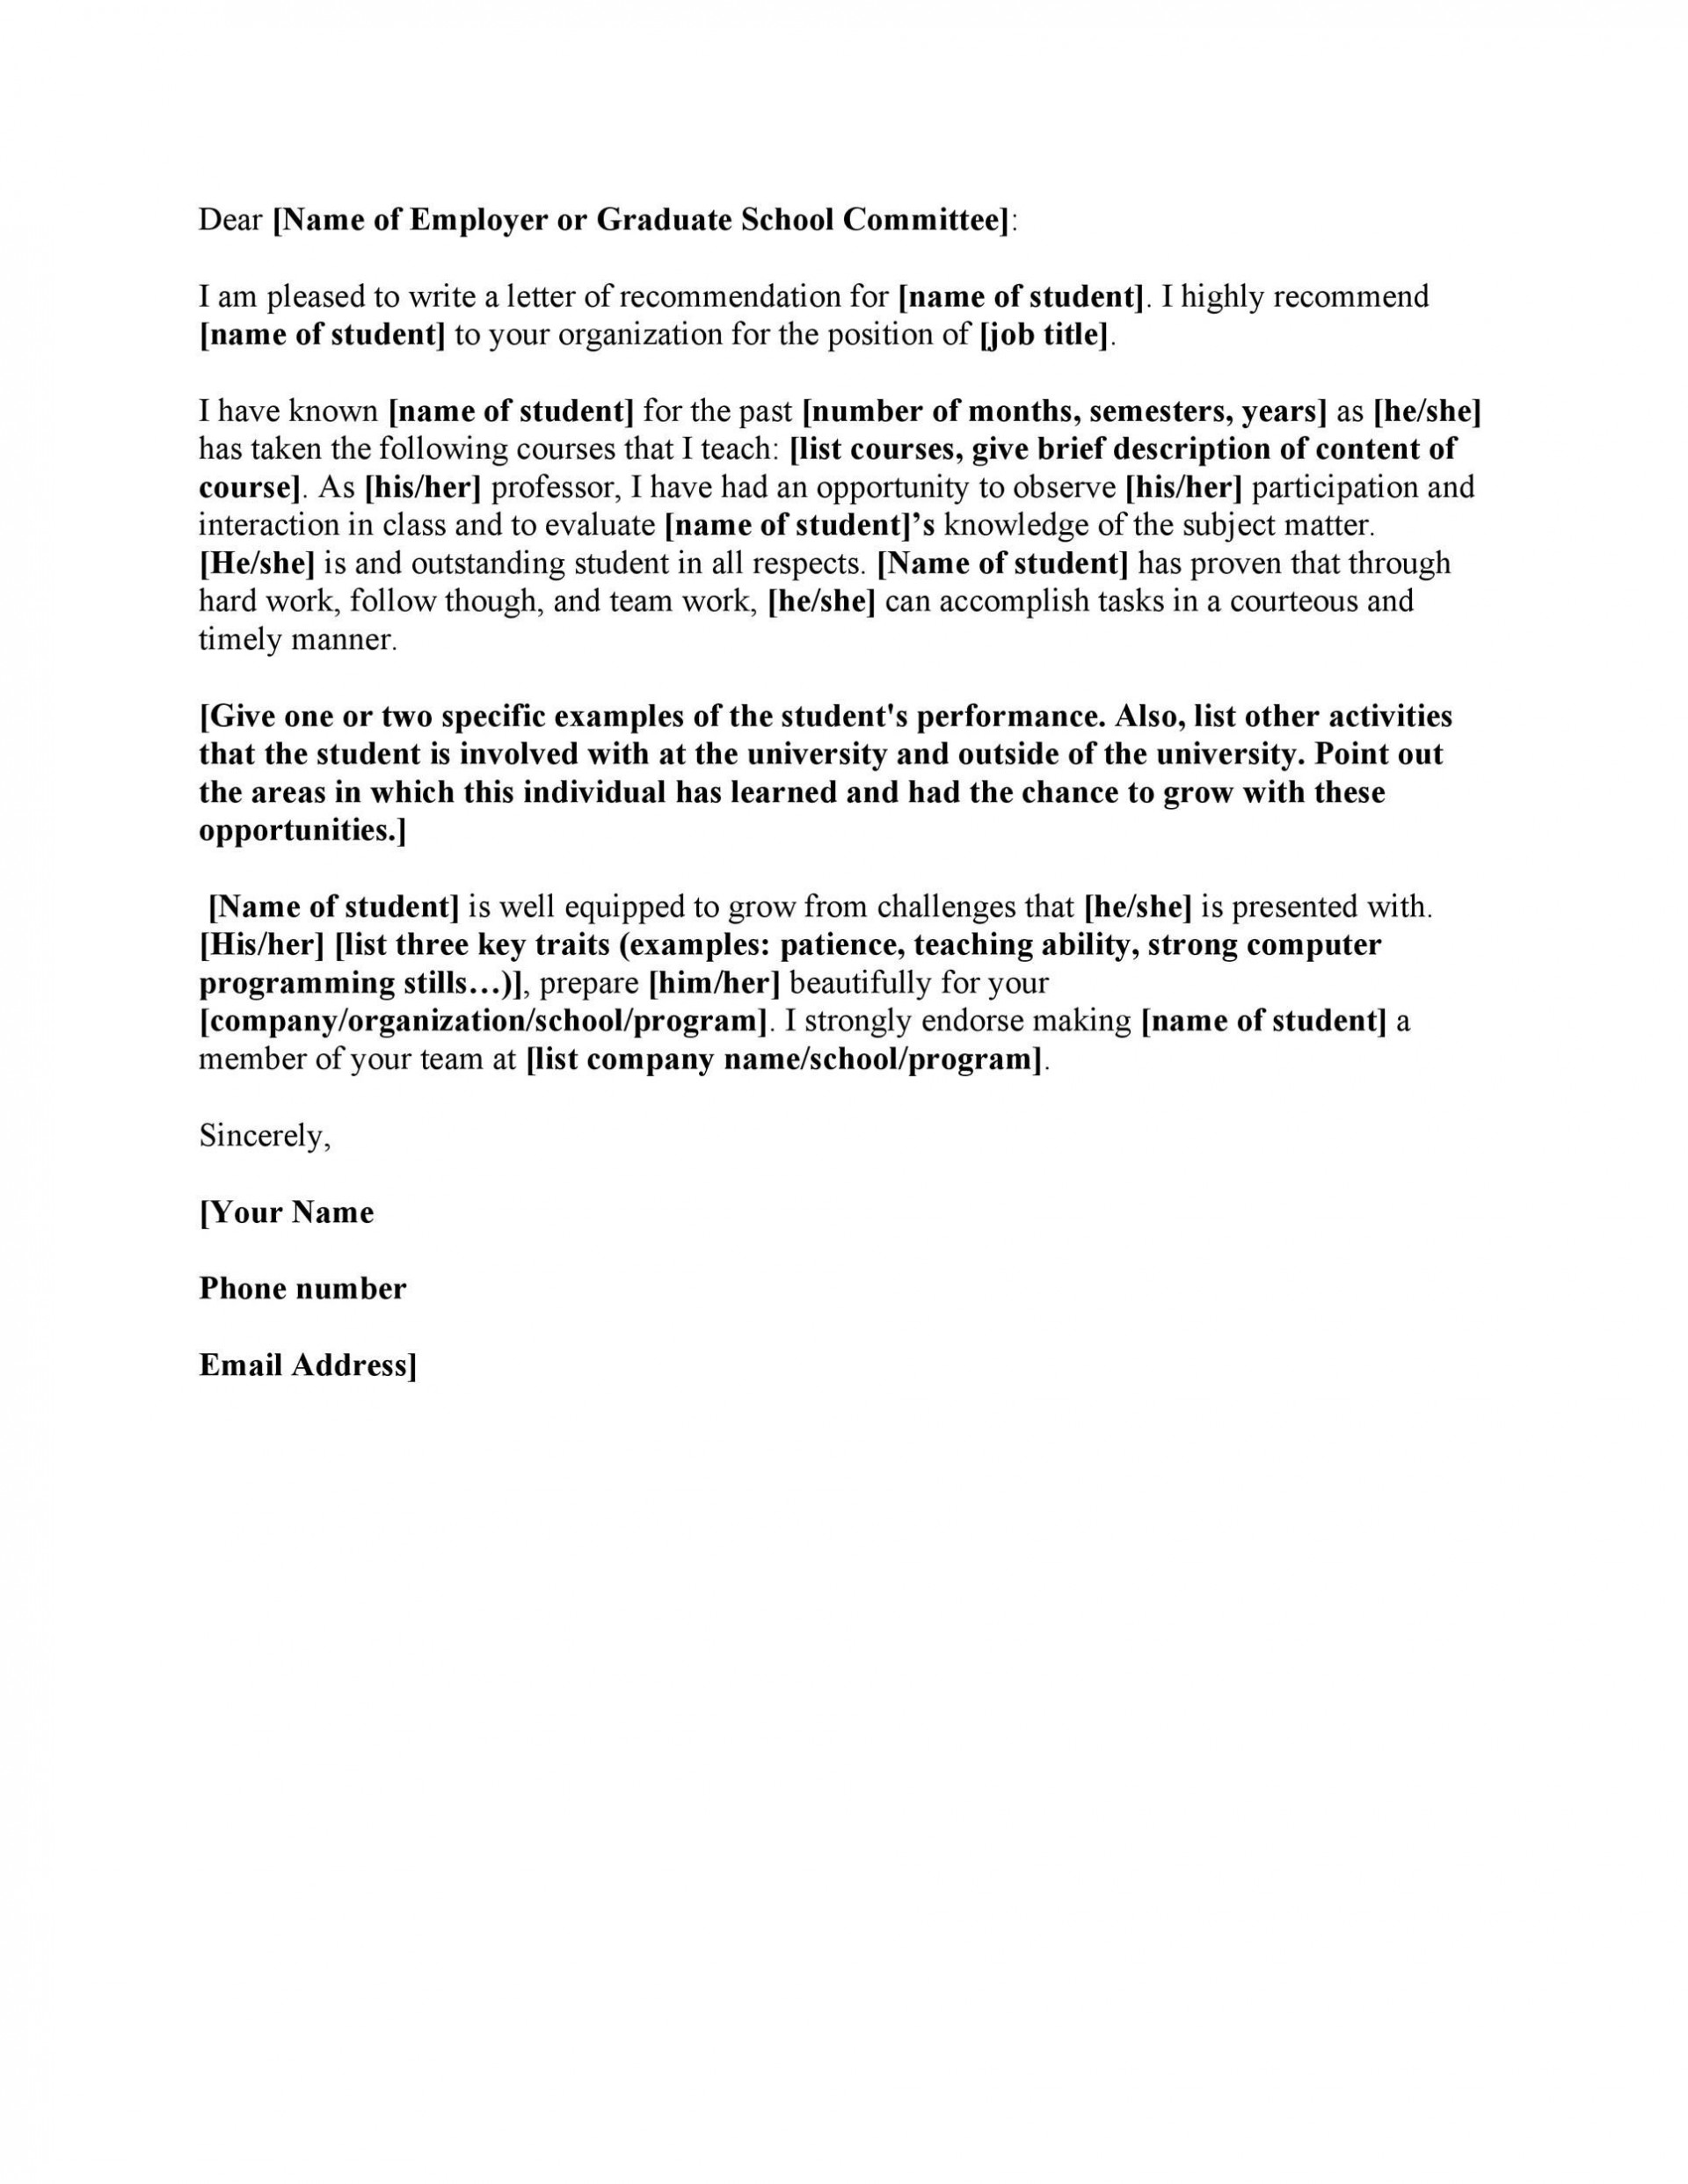 003 Unforgettable Example Of Letter Recommendation For Graduate School From Employer Sample  Pdf Grad1920